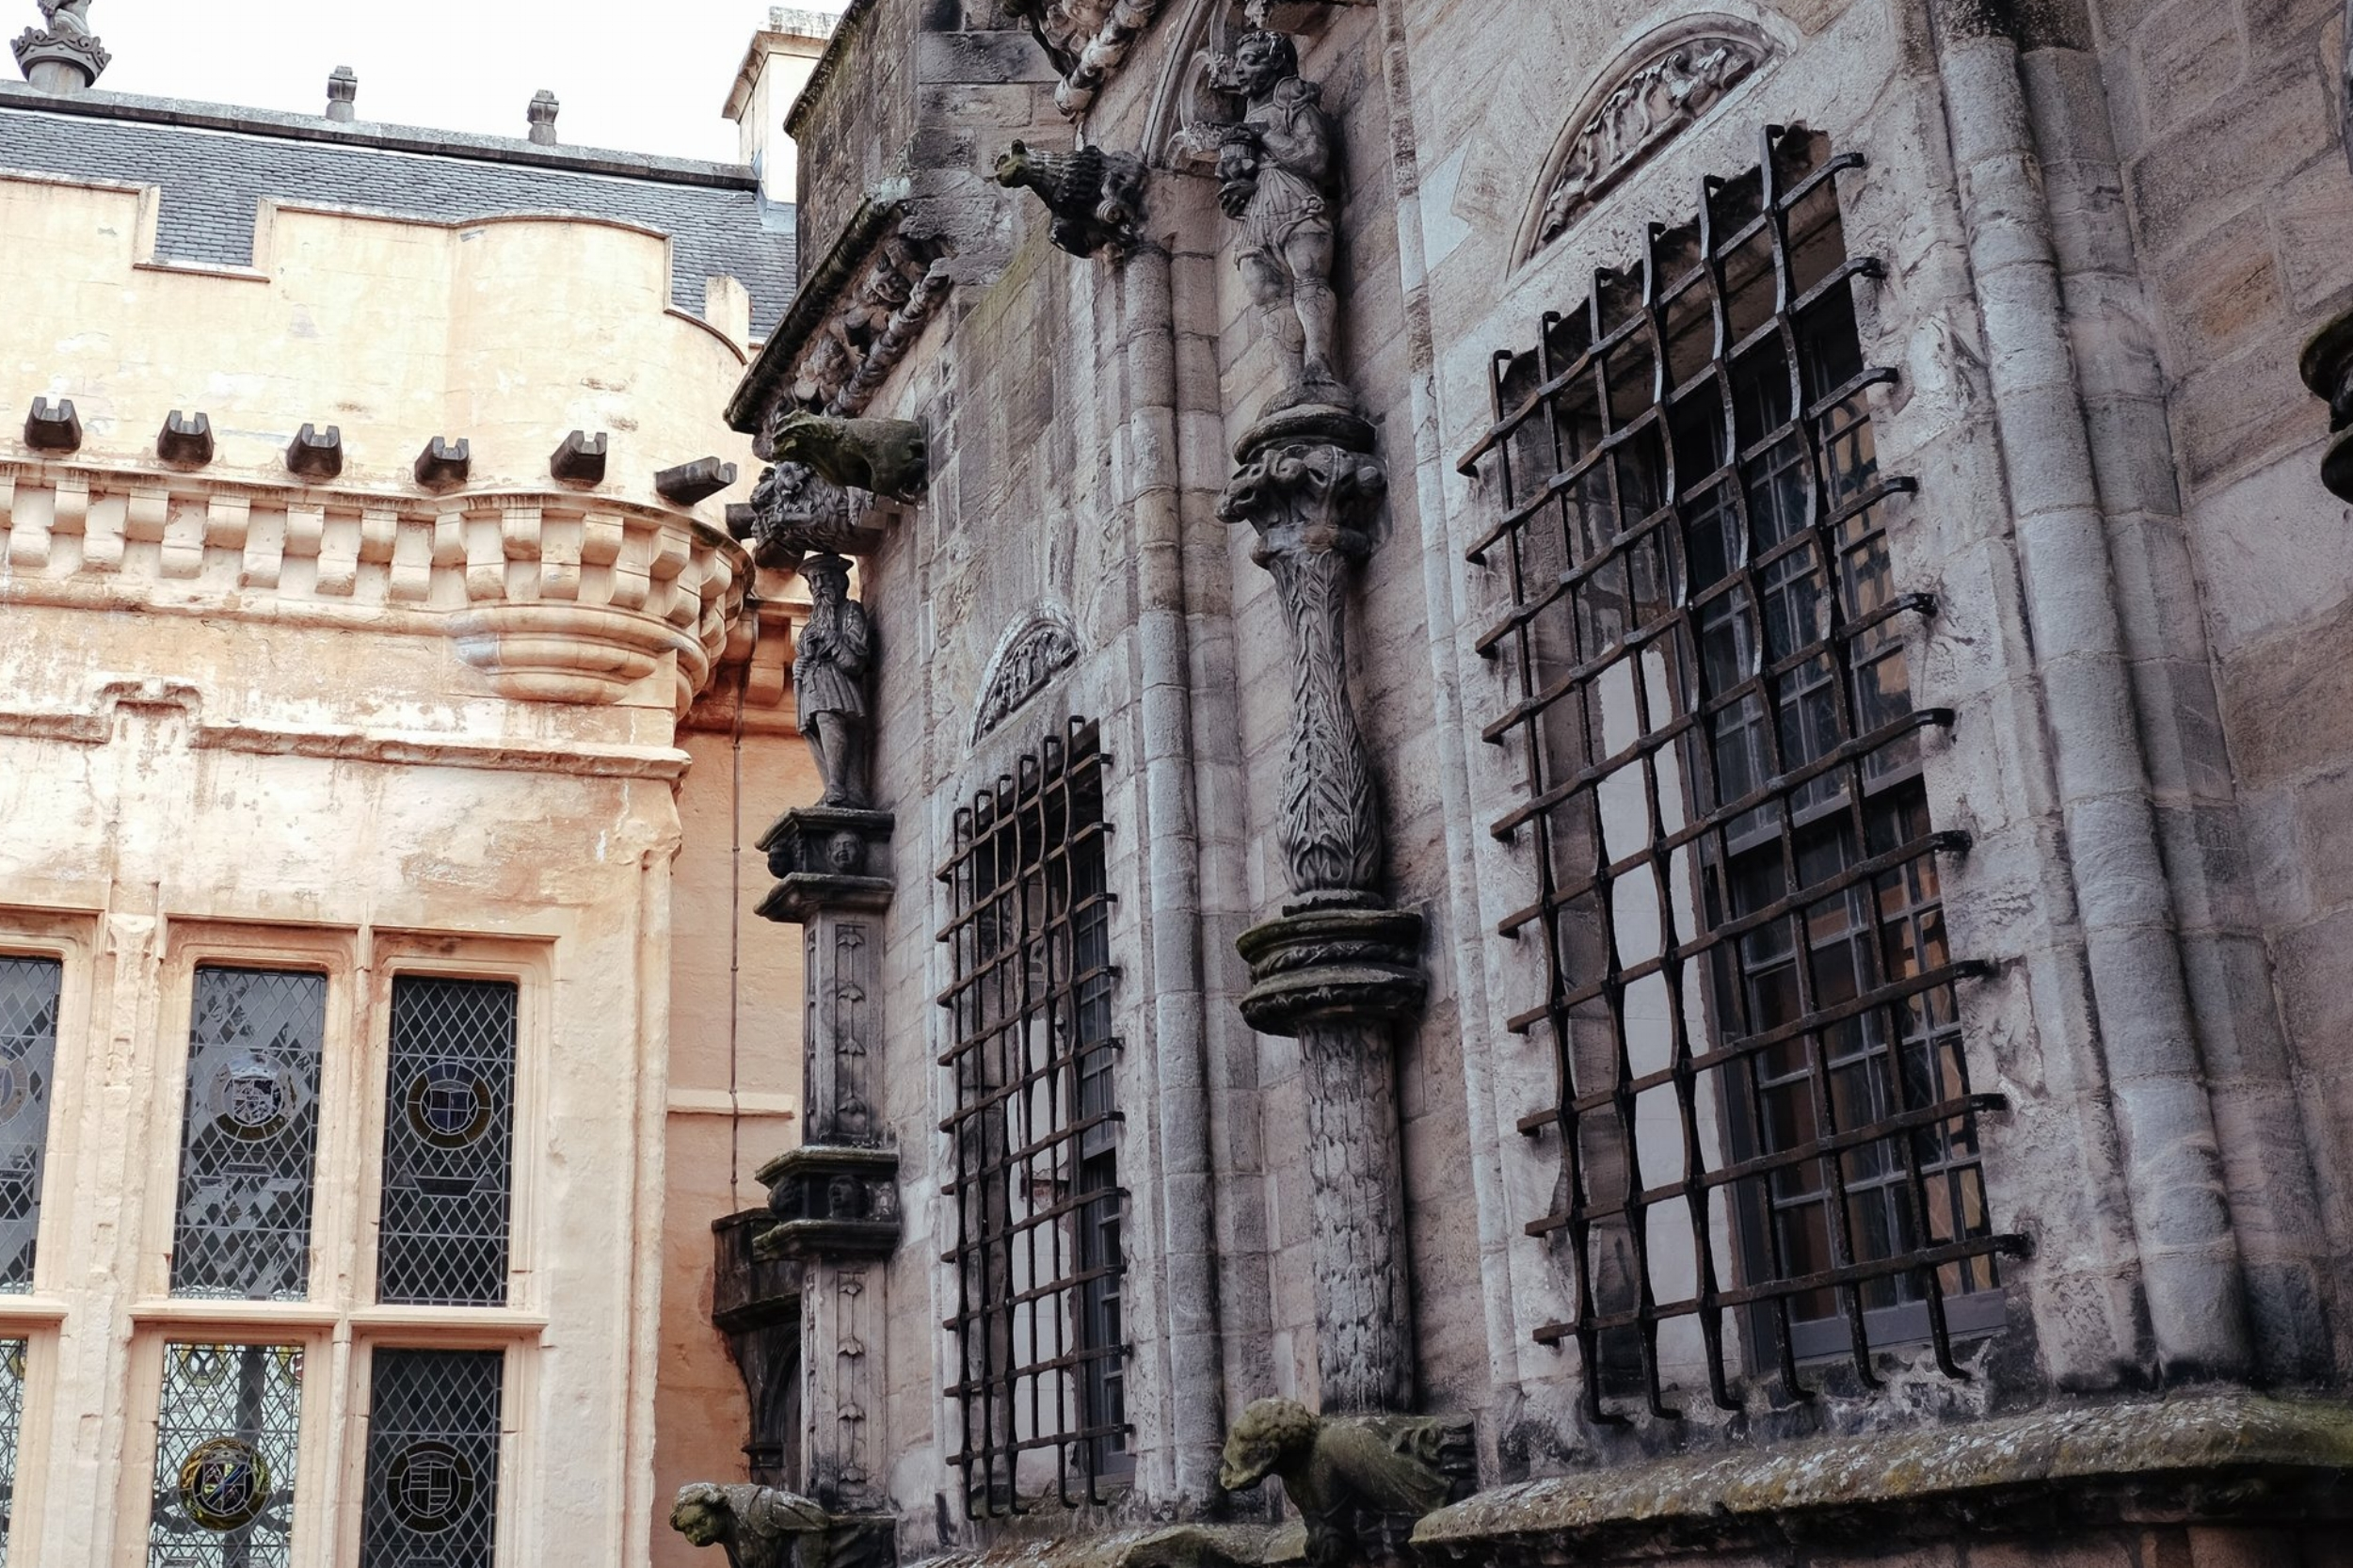 Day 3 Stirlingto Fort William - Stirling Bridge > Wallace Monument> Stirling Castle > Luss Village